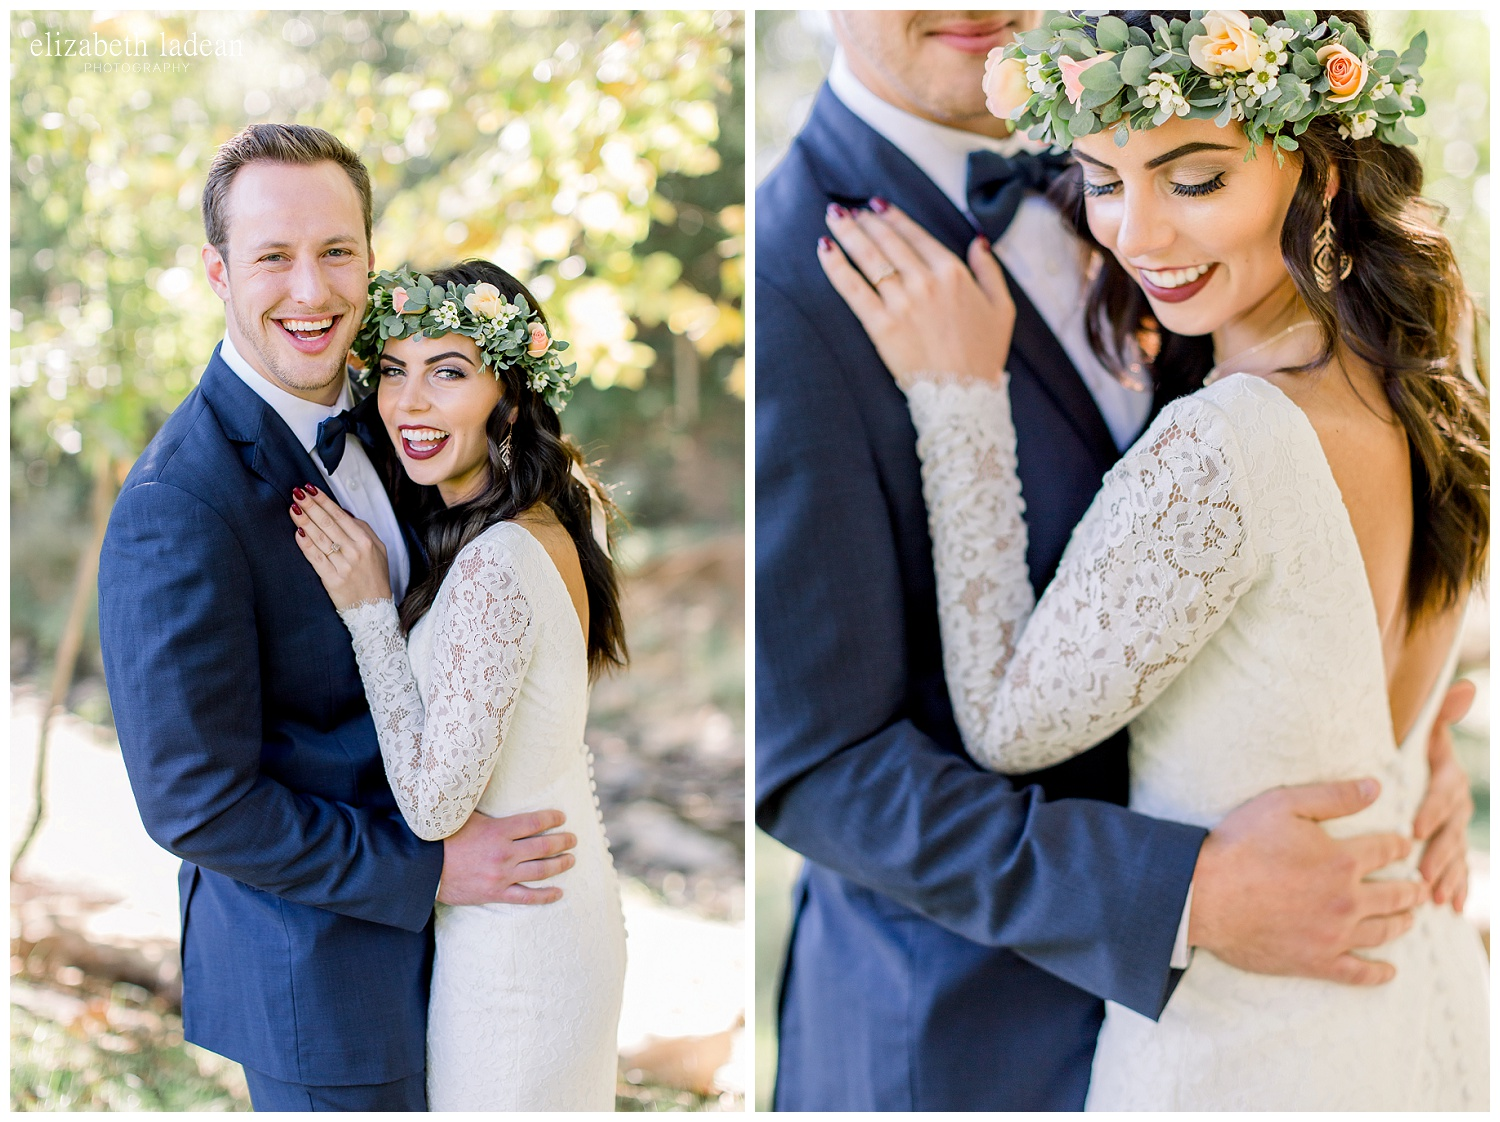 Willow-Creek-Blush-and-Blues-Outdoor-Wedding-Photography-S+Z2018-elizabeth-ladean-photography-photo_0537.jpg